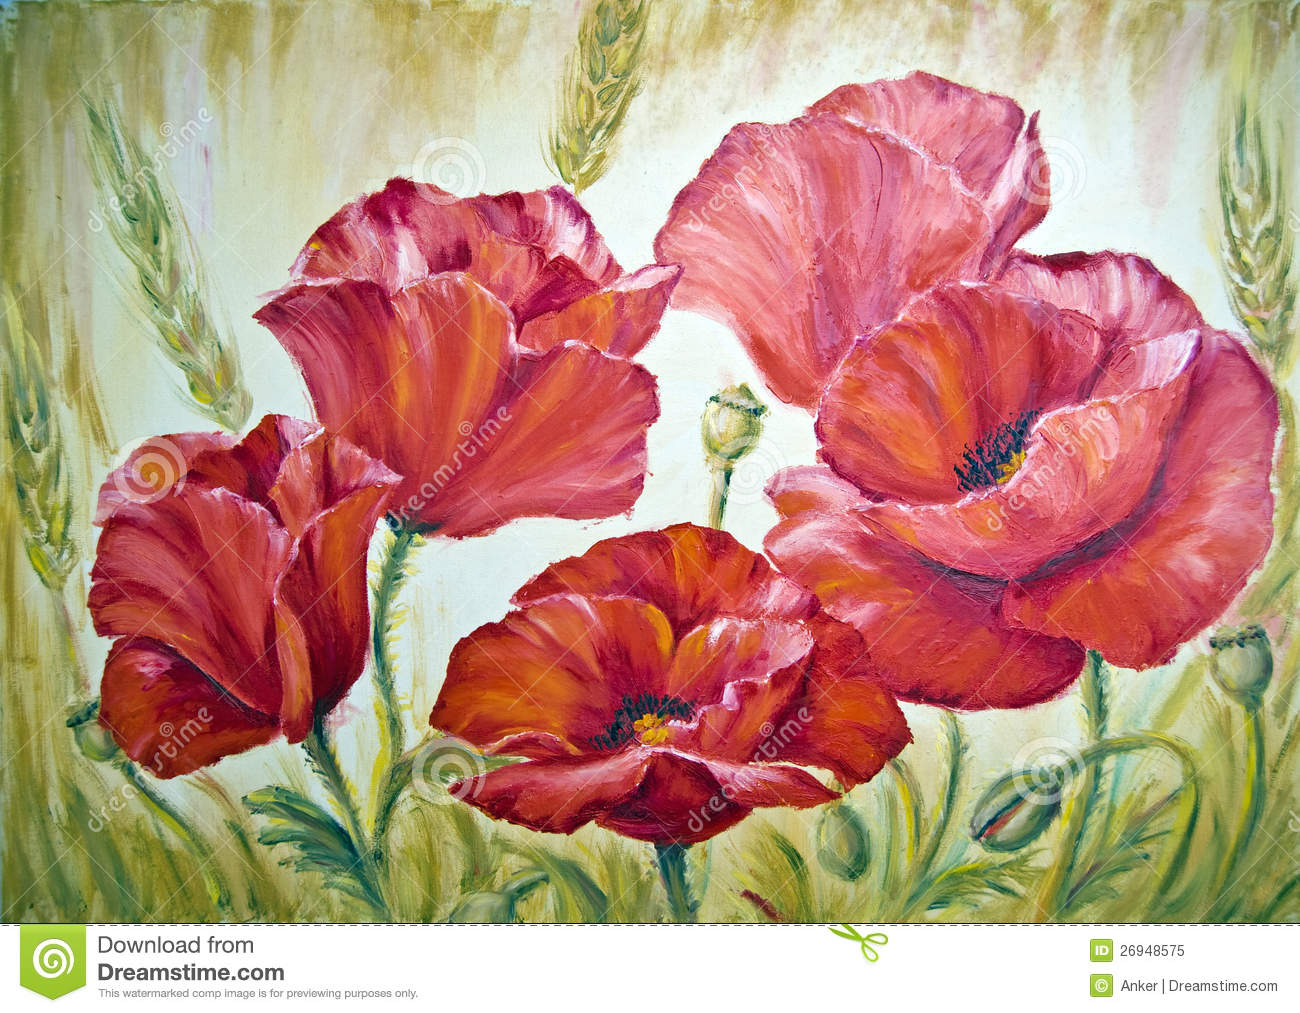 Poppies oil painting on canvas stock illustration illustration of download comp mightylinksfo